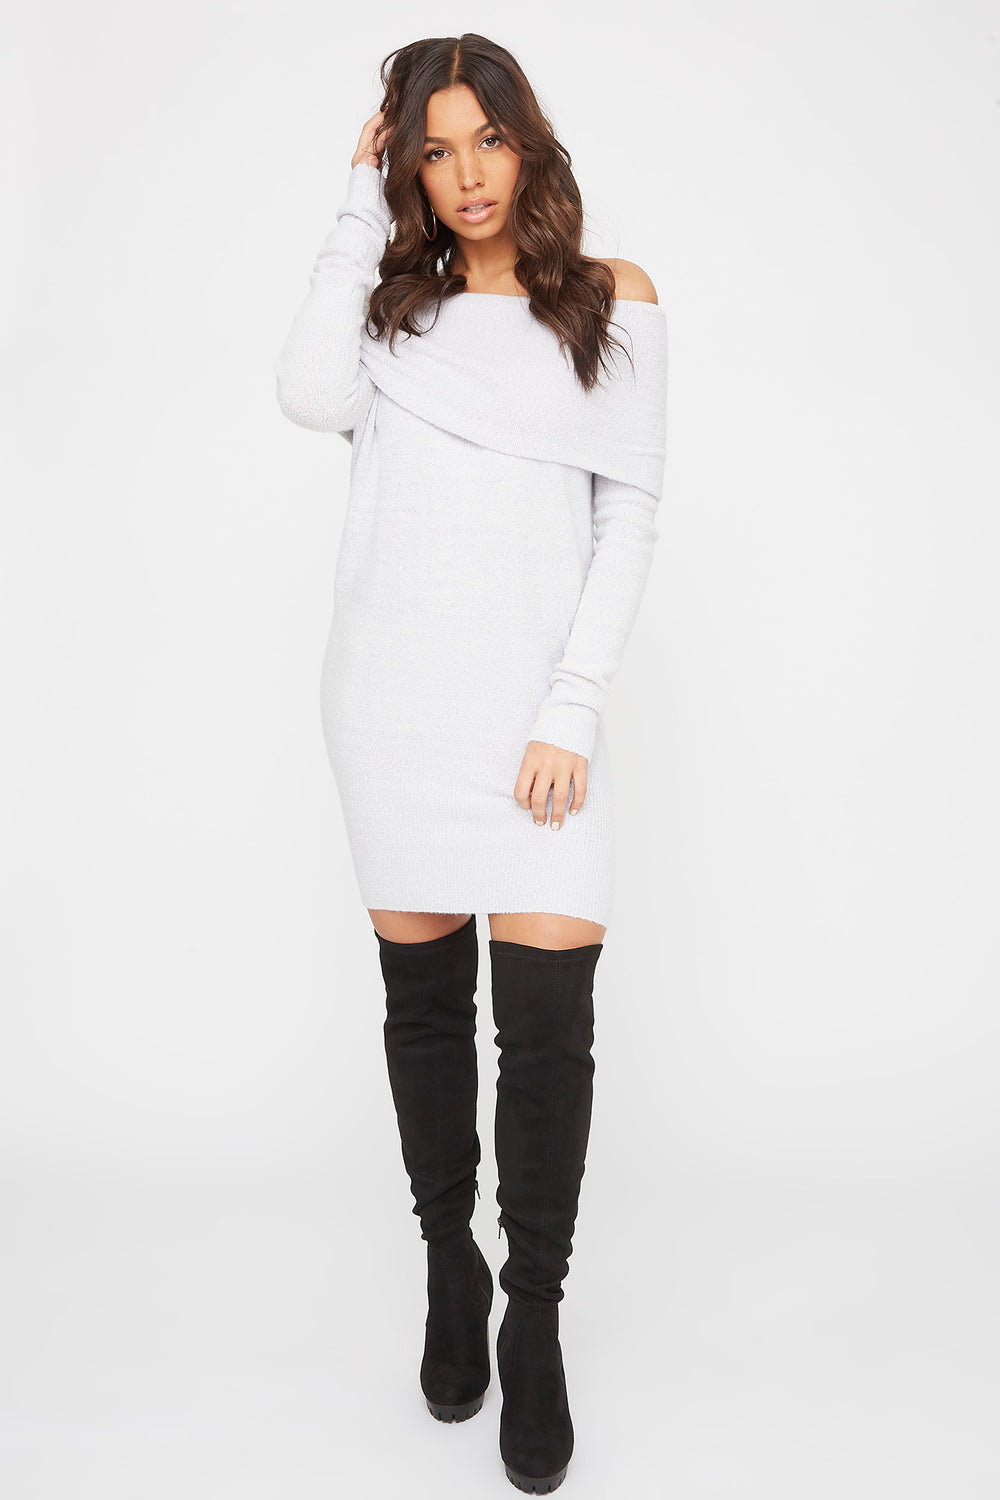 2 Way Mossy Cowl Neck Sweater Dress – Charlotte Russe